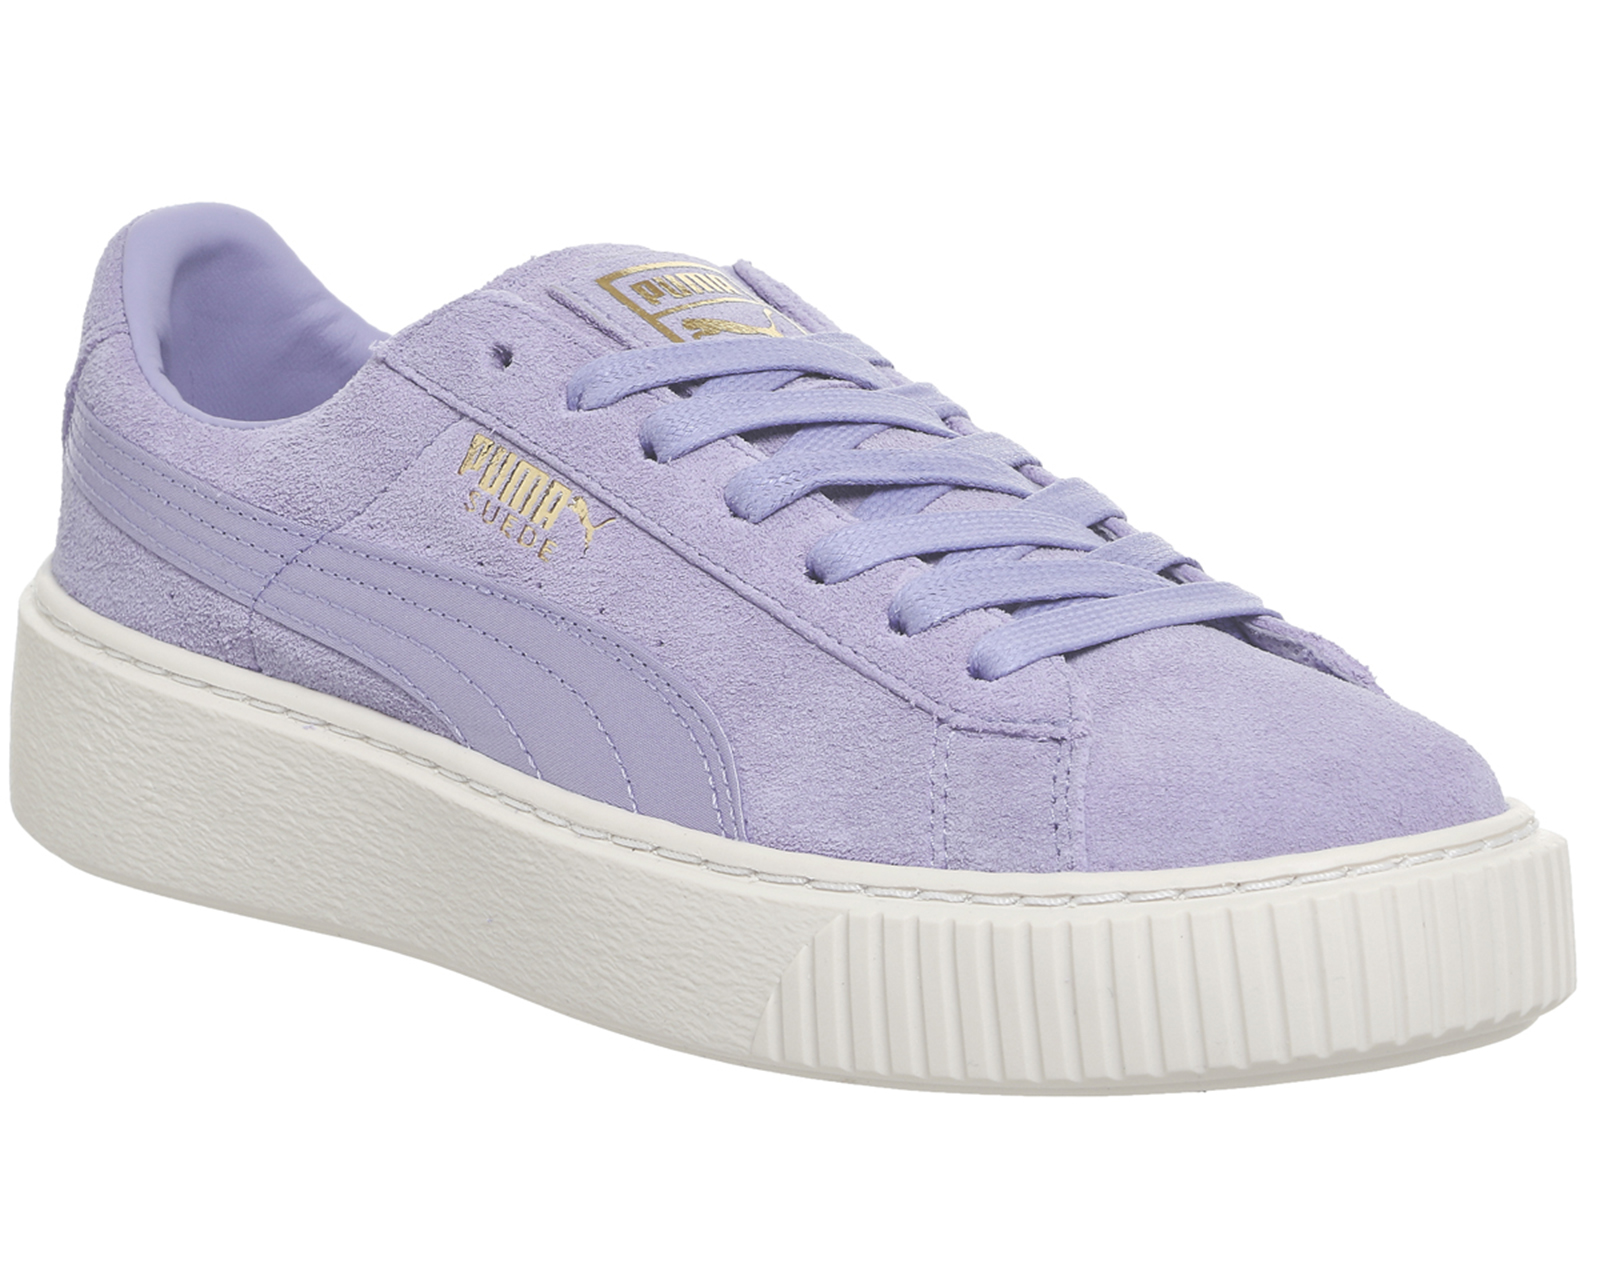 womens puma suede platform trainers lavender gold satin. Black Bedroom Furniture Sets. Home Design Ideas